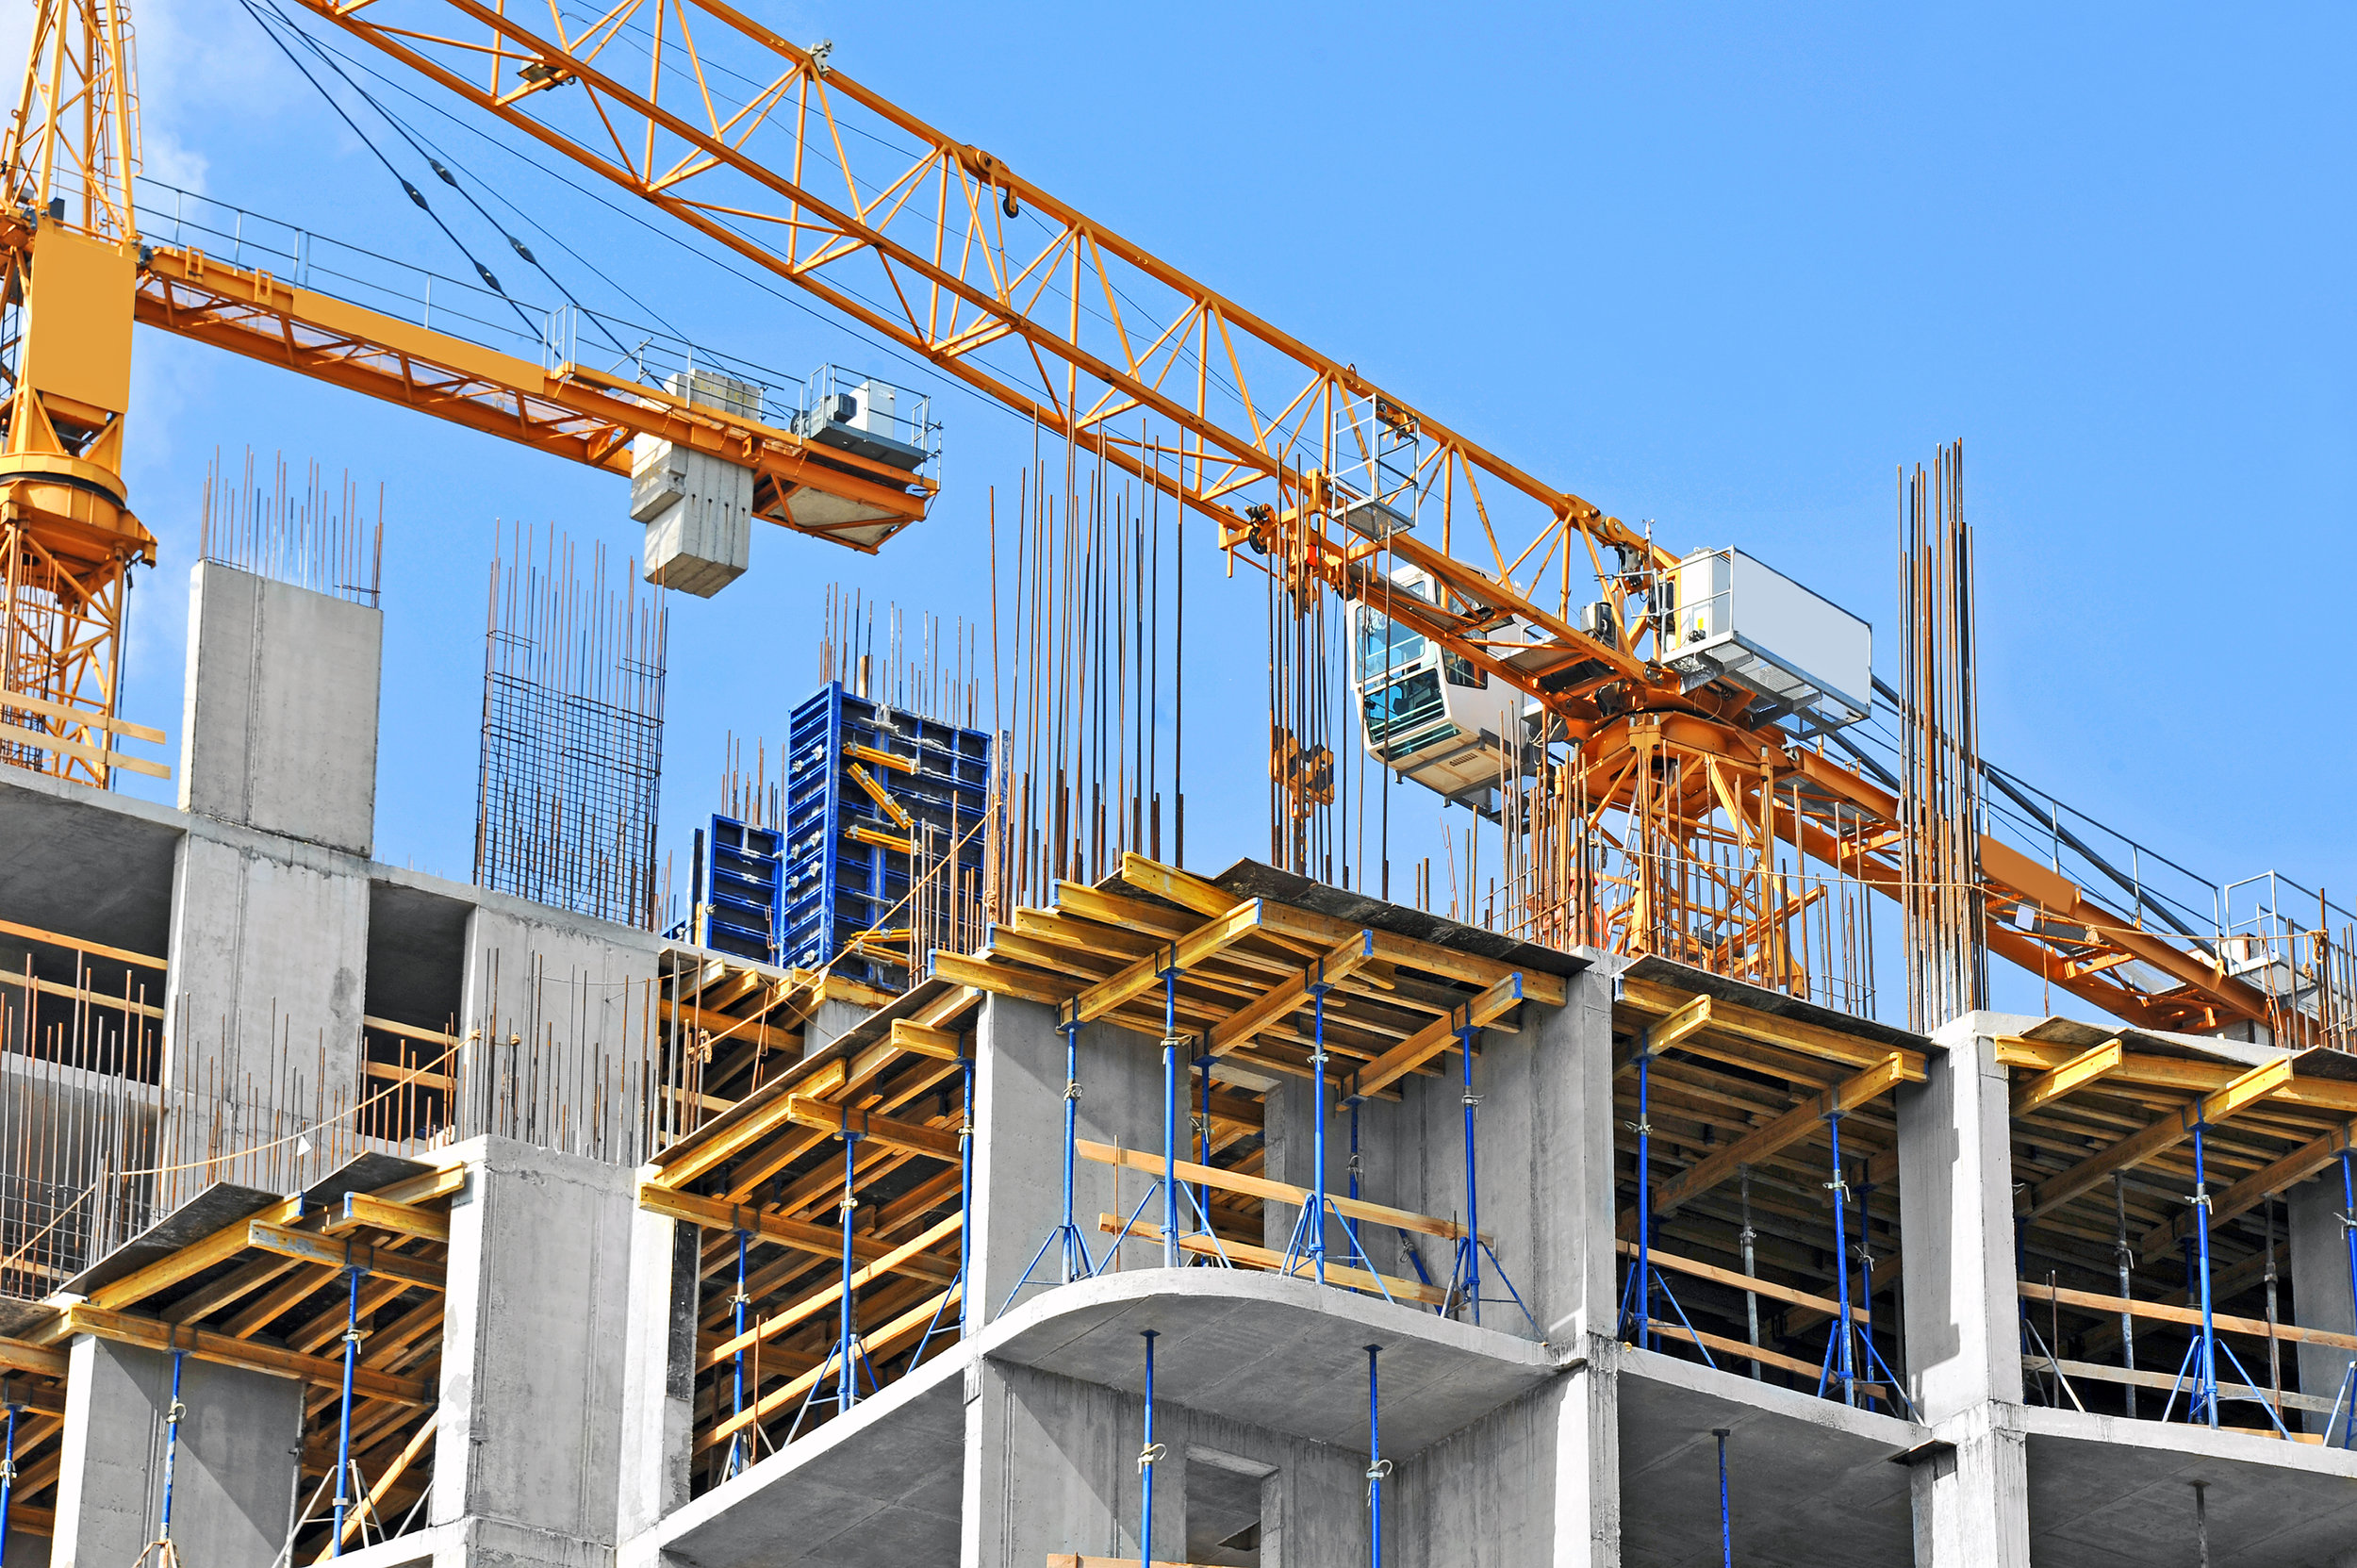 Construction Site Monitoring - Enhance your existing security infrastructure by expanding visual surveillance at a lower cost. Locix wireless HD Vision Sensors provide high definition images and video clips without the costly hardware and installation typical of traditional surveillance cameras, perfectly supplementing existing coverage or extending coverage to areas like parking lots and building exteriors.